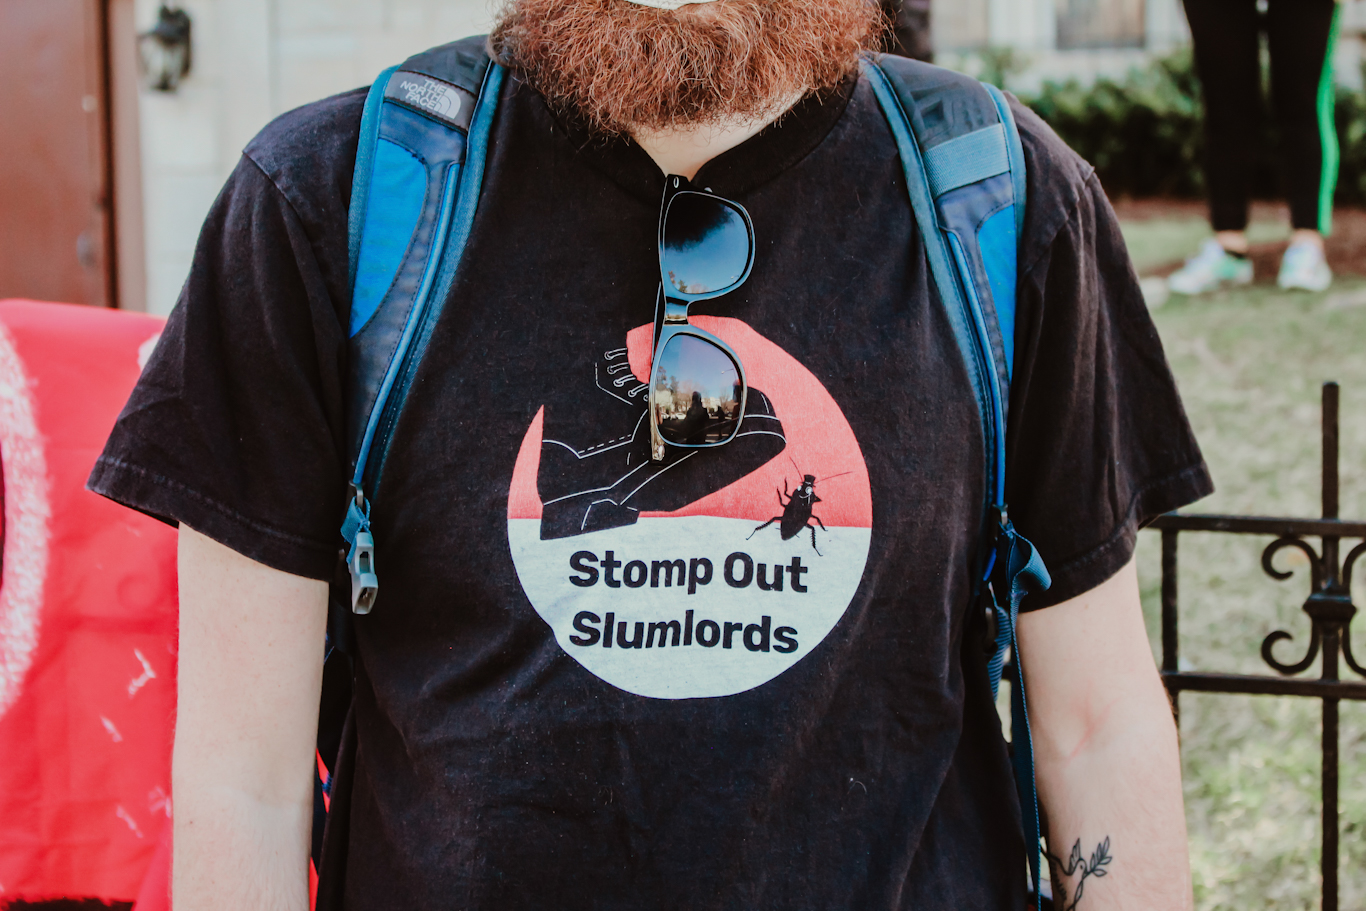 Stomp Out Slumlords